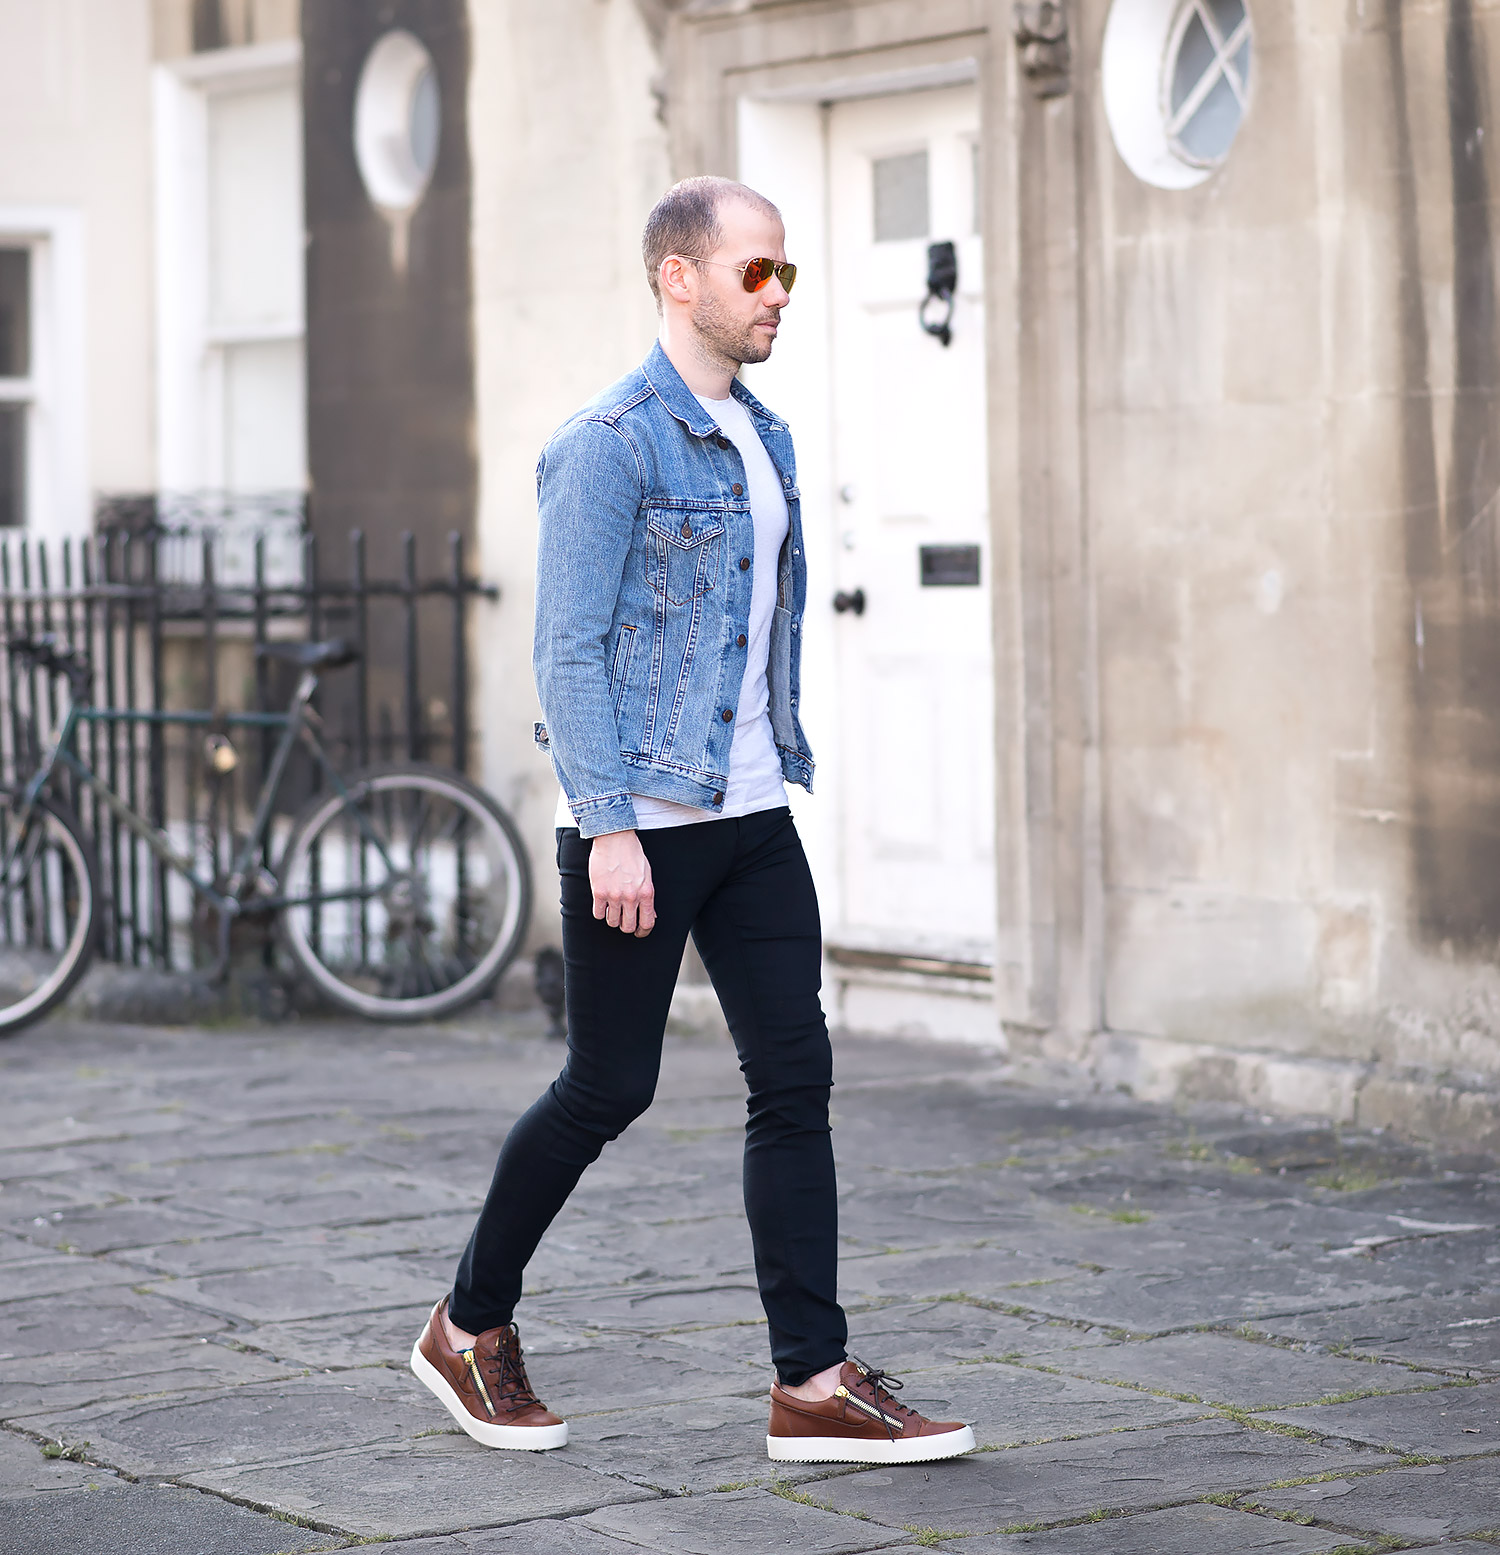 Women Jeans and the Guys who wear them  Styleforum